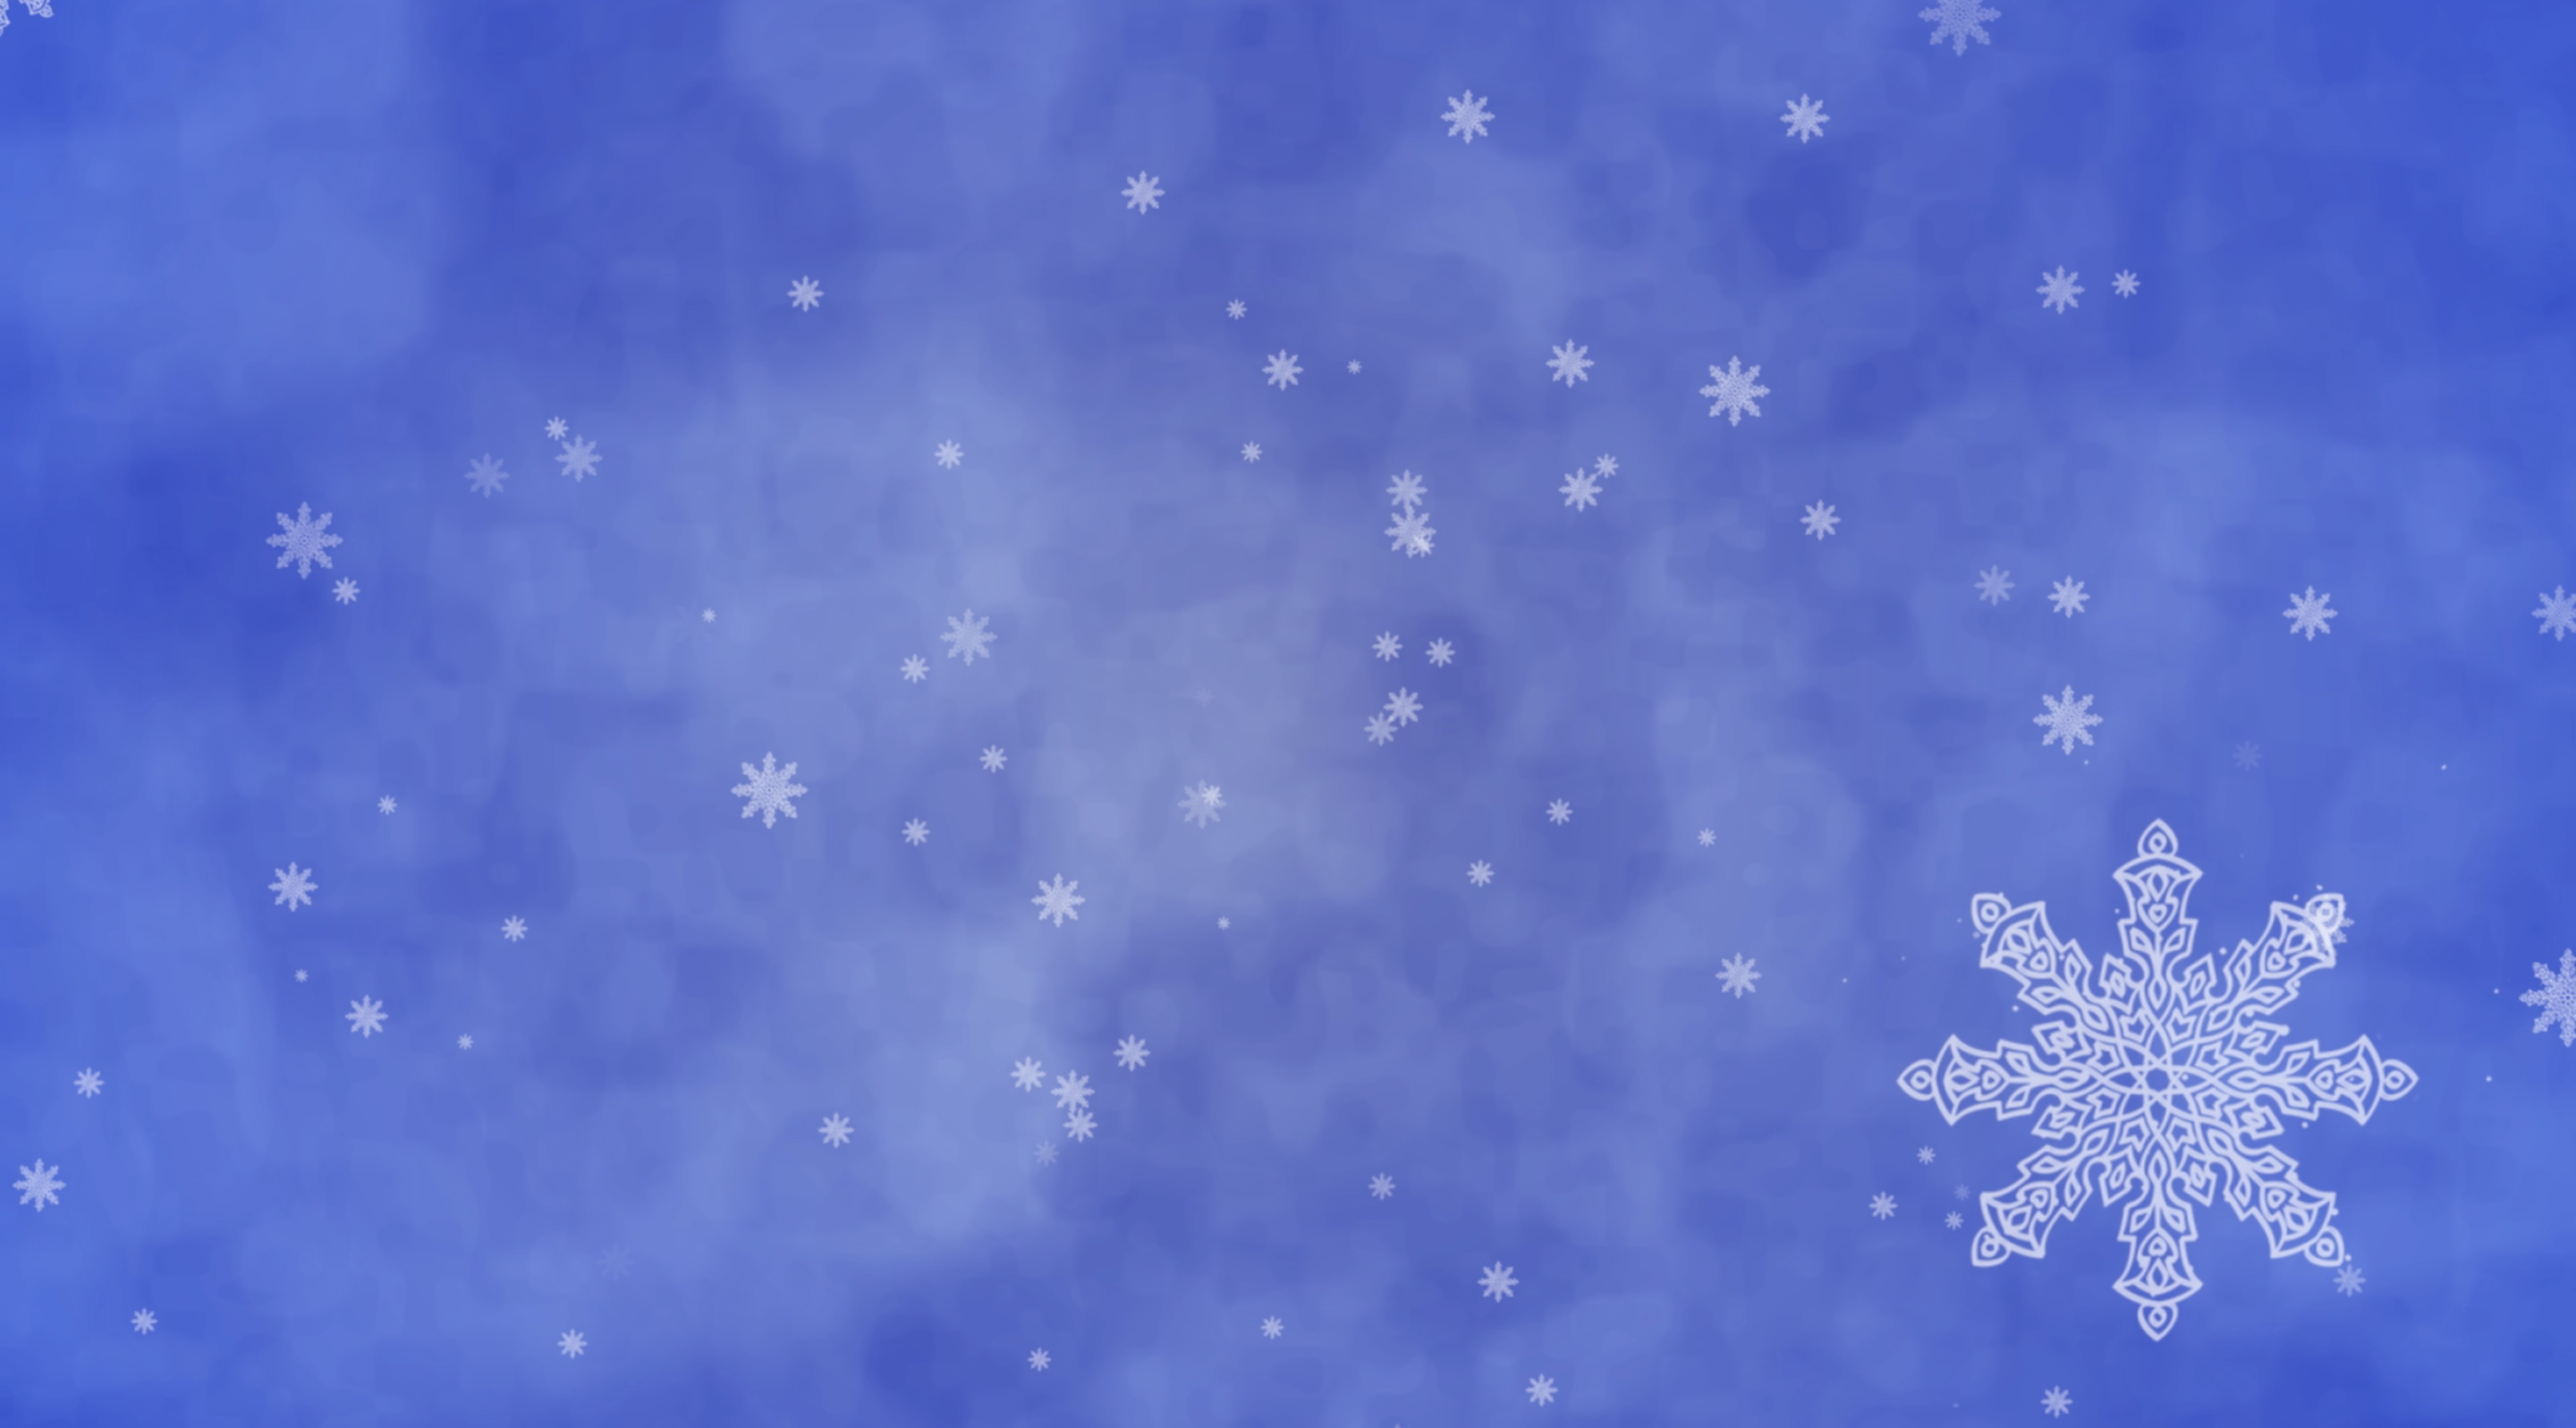 Snow Crystals Falling With A Cloudy Background Royalty Free Video